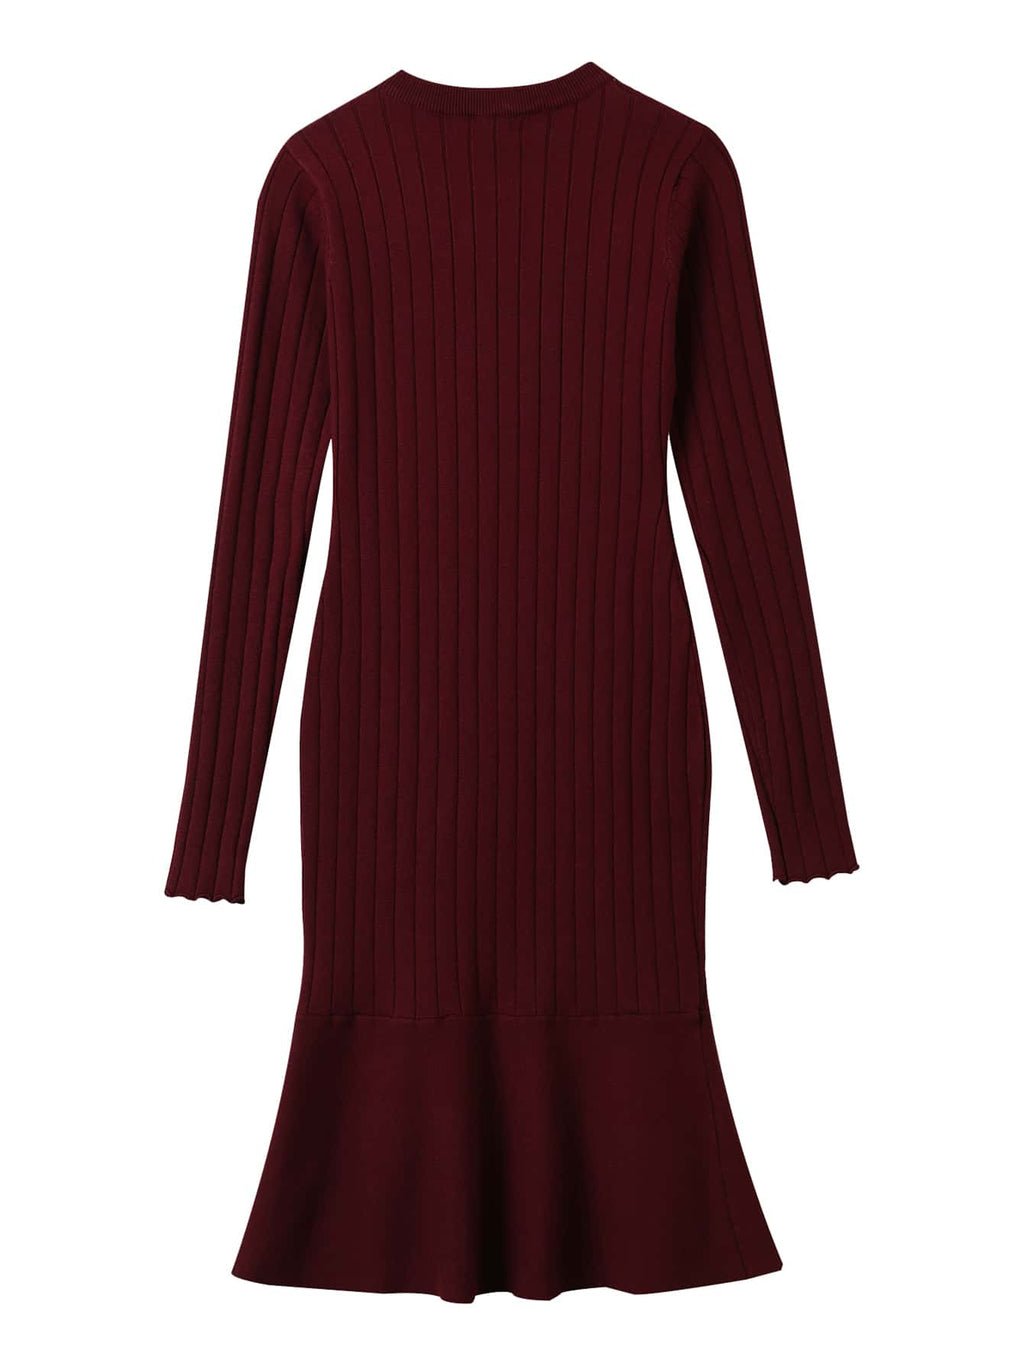 Button Front Slim Fit Mermaid Sweater Dress - INS | Online Fashion Free Shipping Clothing, Dresses, Tops, Shoes